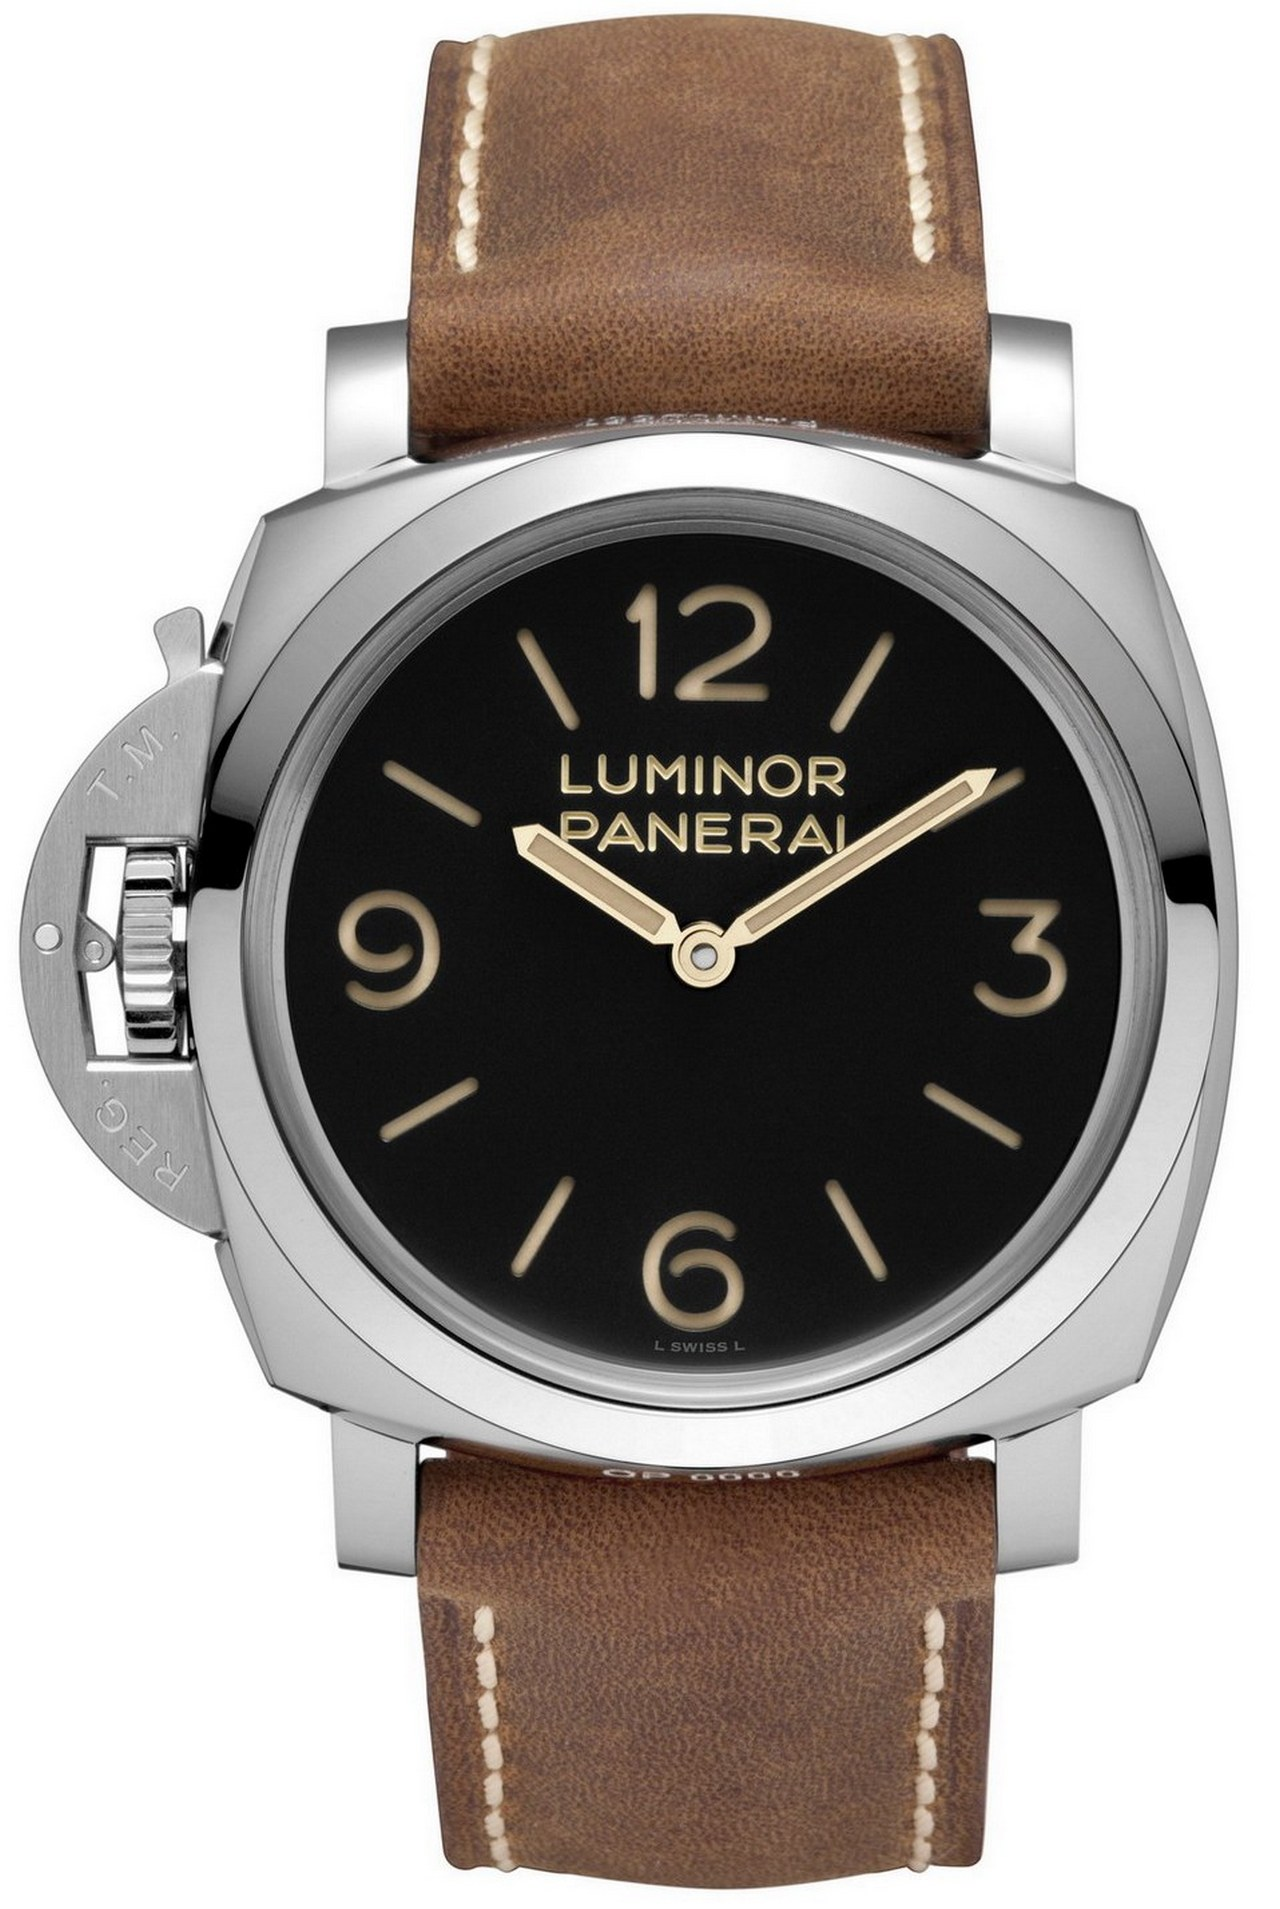 anteprima-sihh-2014-officine-panerai-luminor-1950-left-handed-3-days-pam577_0_1001